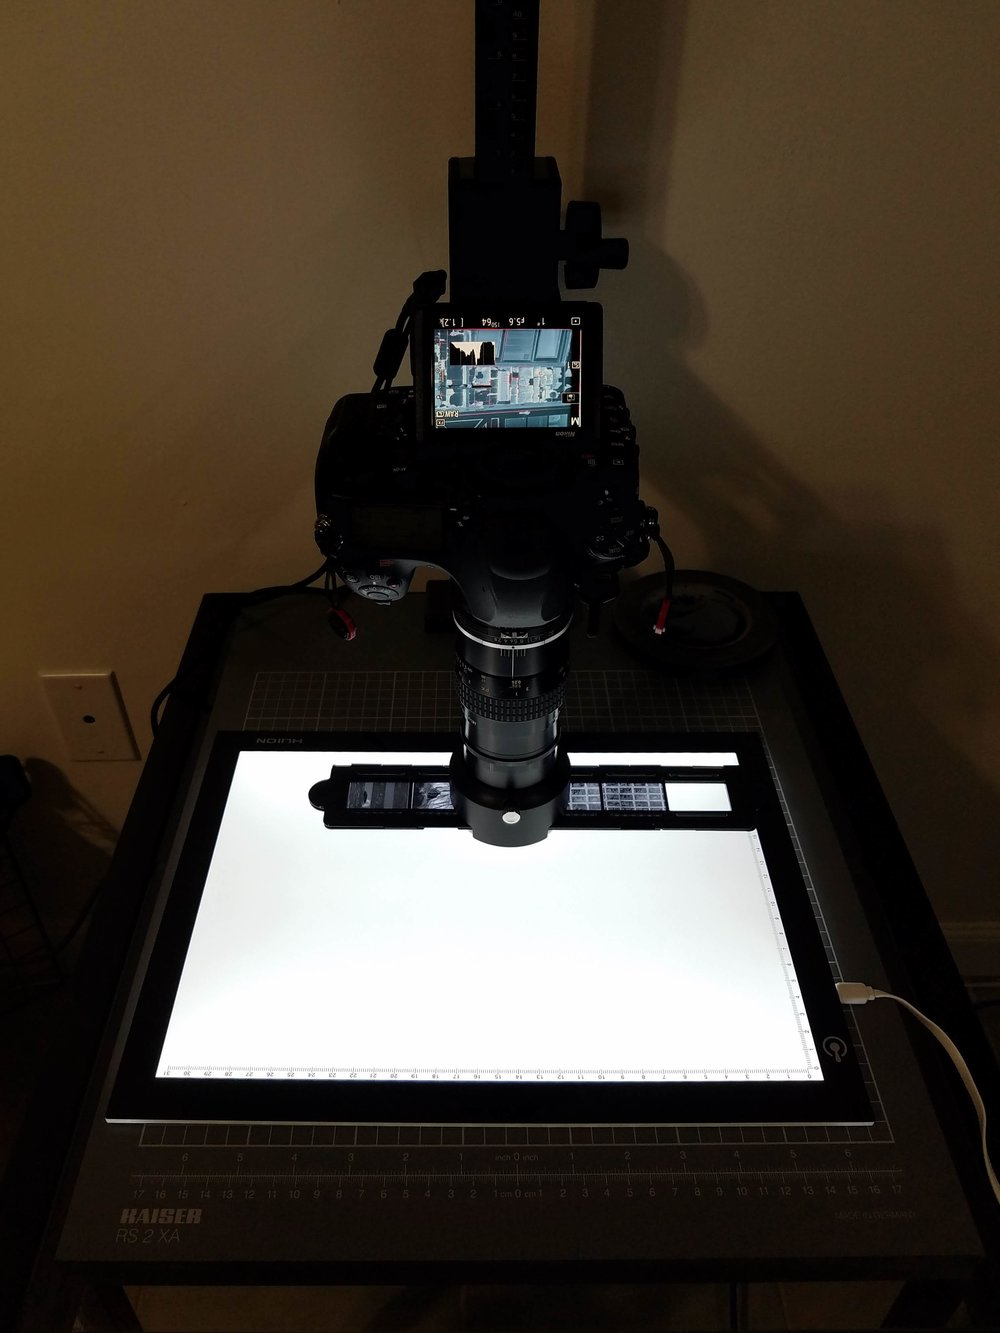 Here is the set-up I used. Basically a copy stand and a light pad. You don't actually need either of these things, but I used them just because I happen to have them.